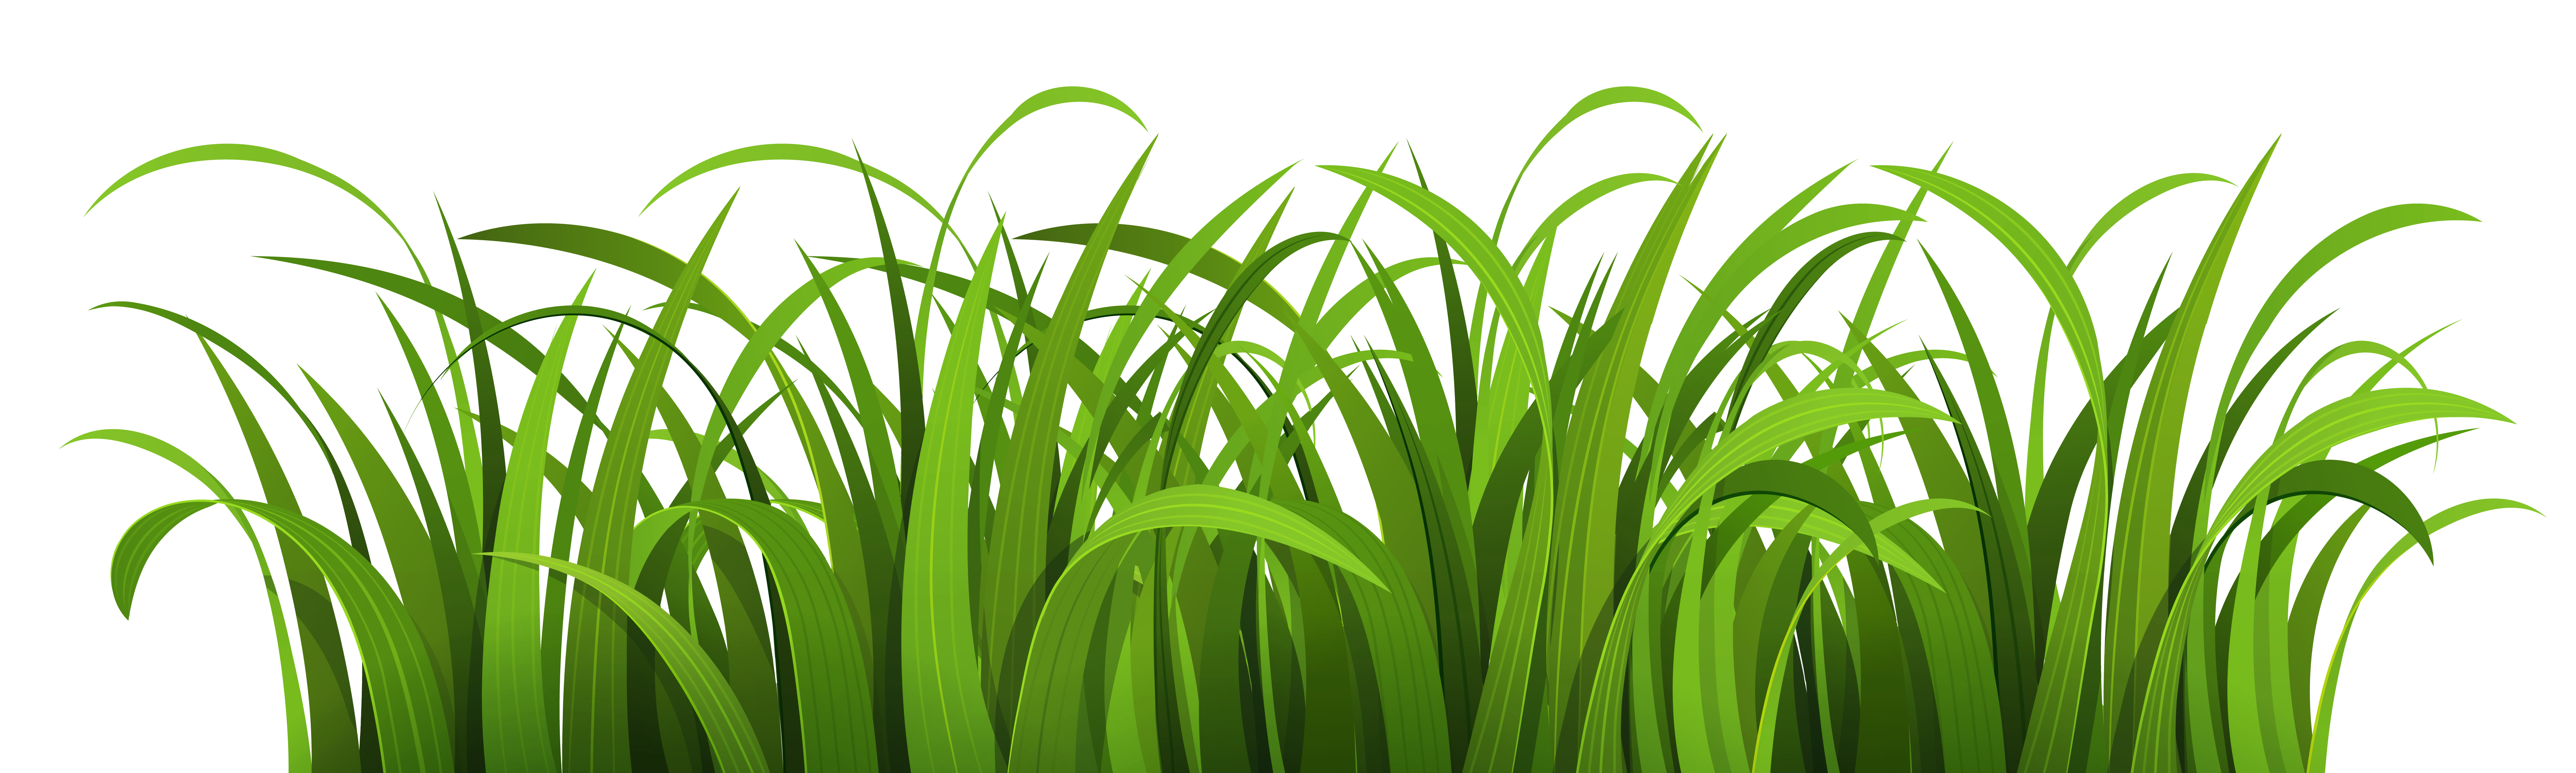 Png image purepng free. Nature clipart clip